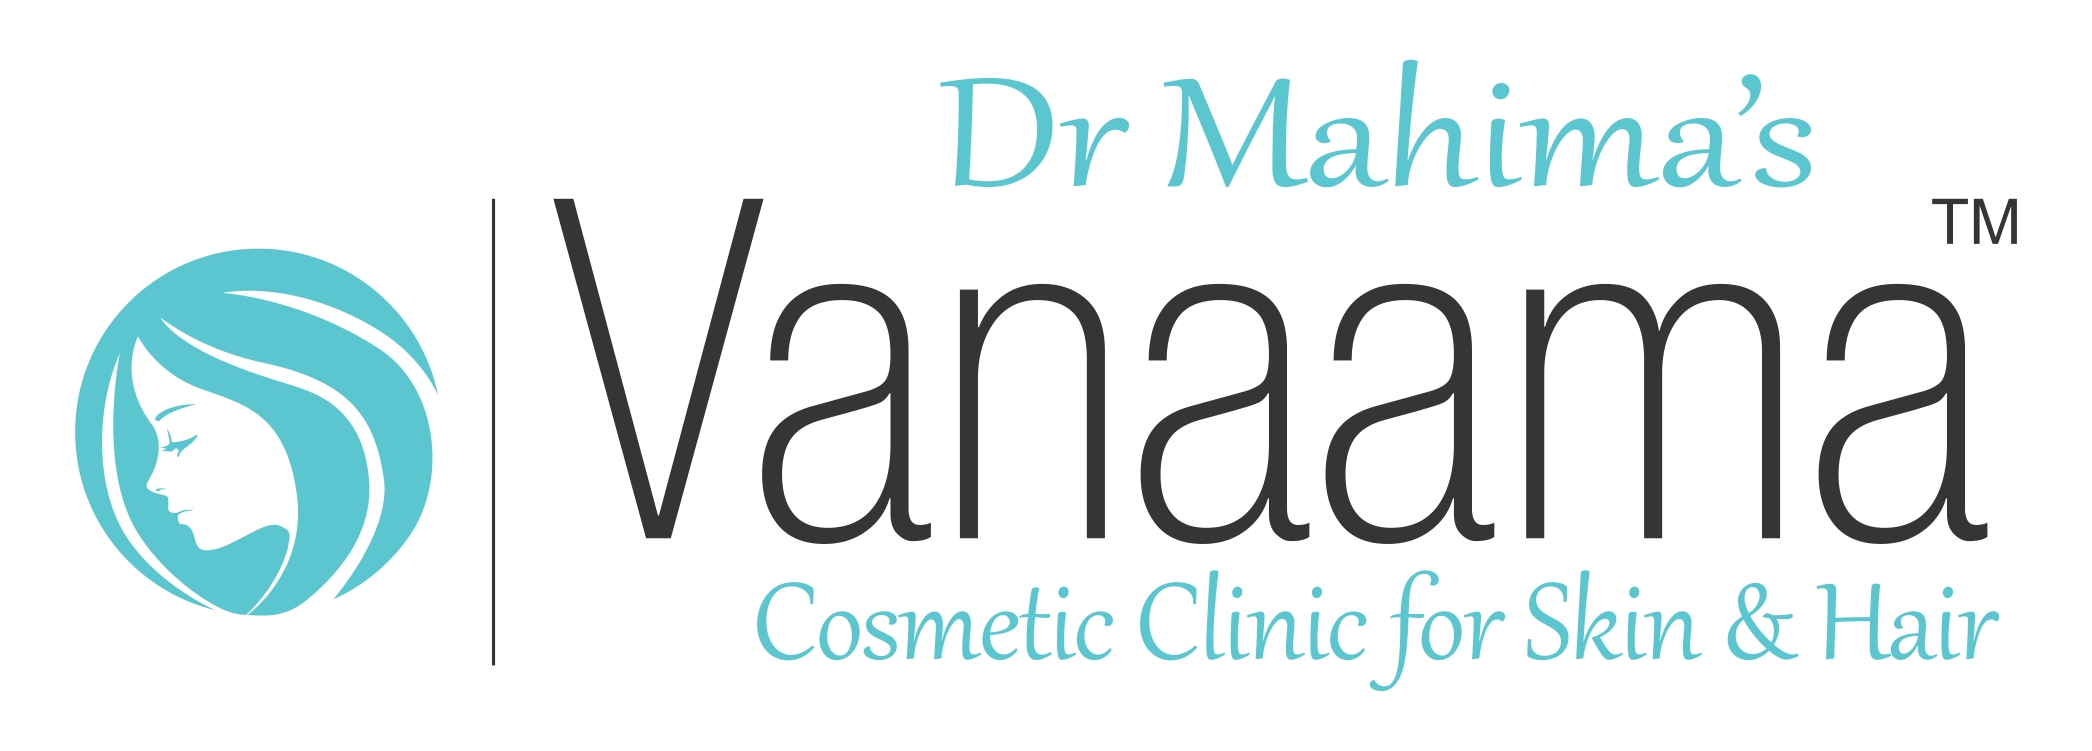 Dr. Mahima's Vanaama Cosmetic Clinic for Skin & Hair